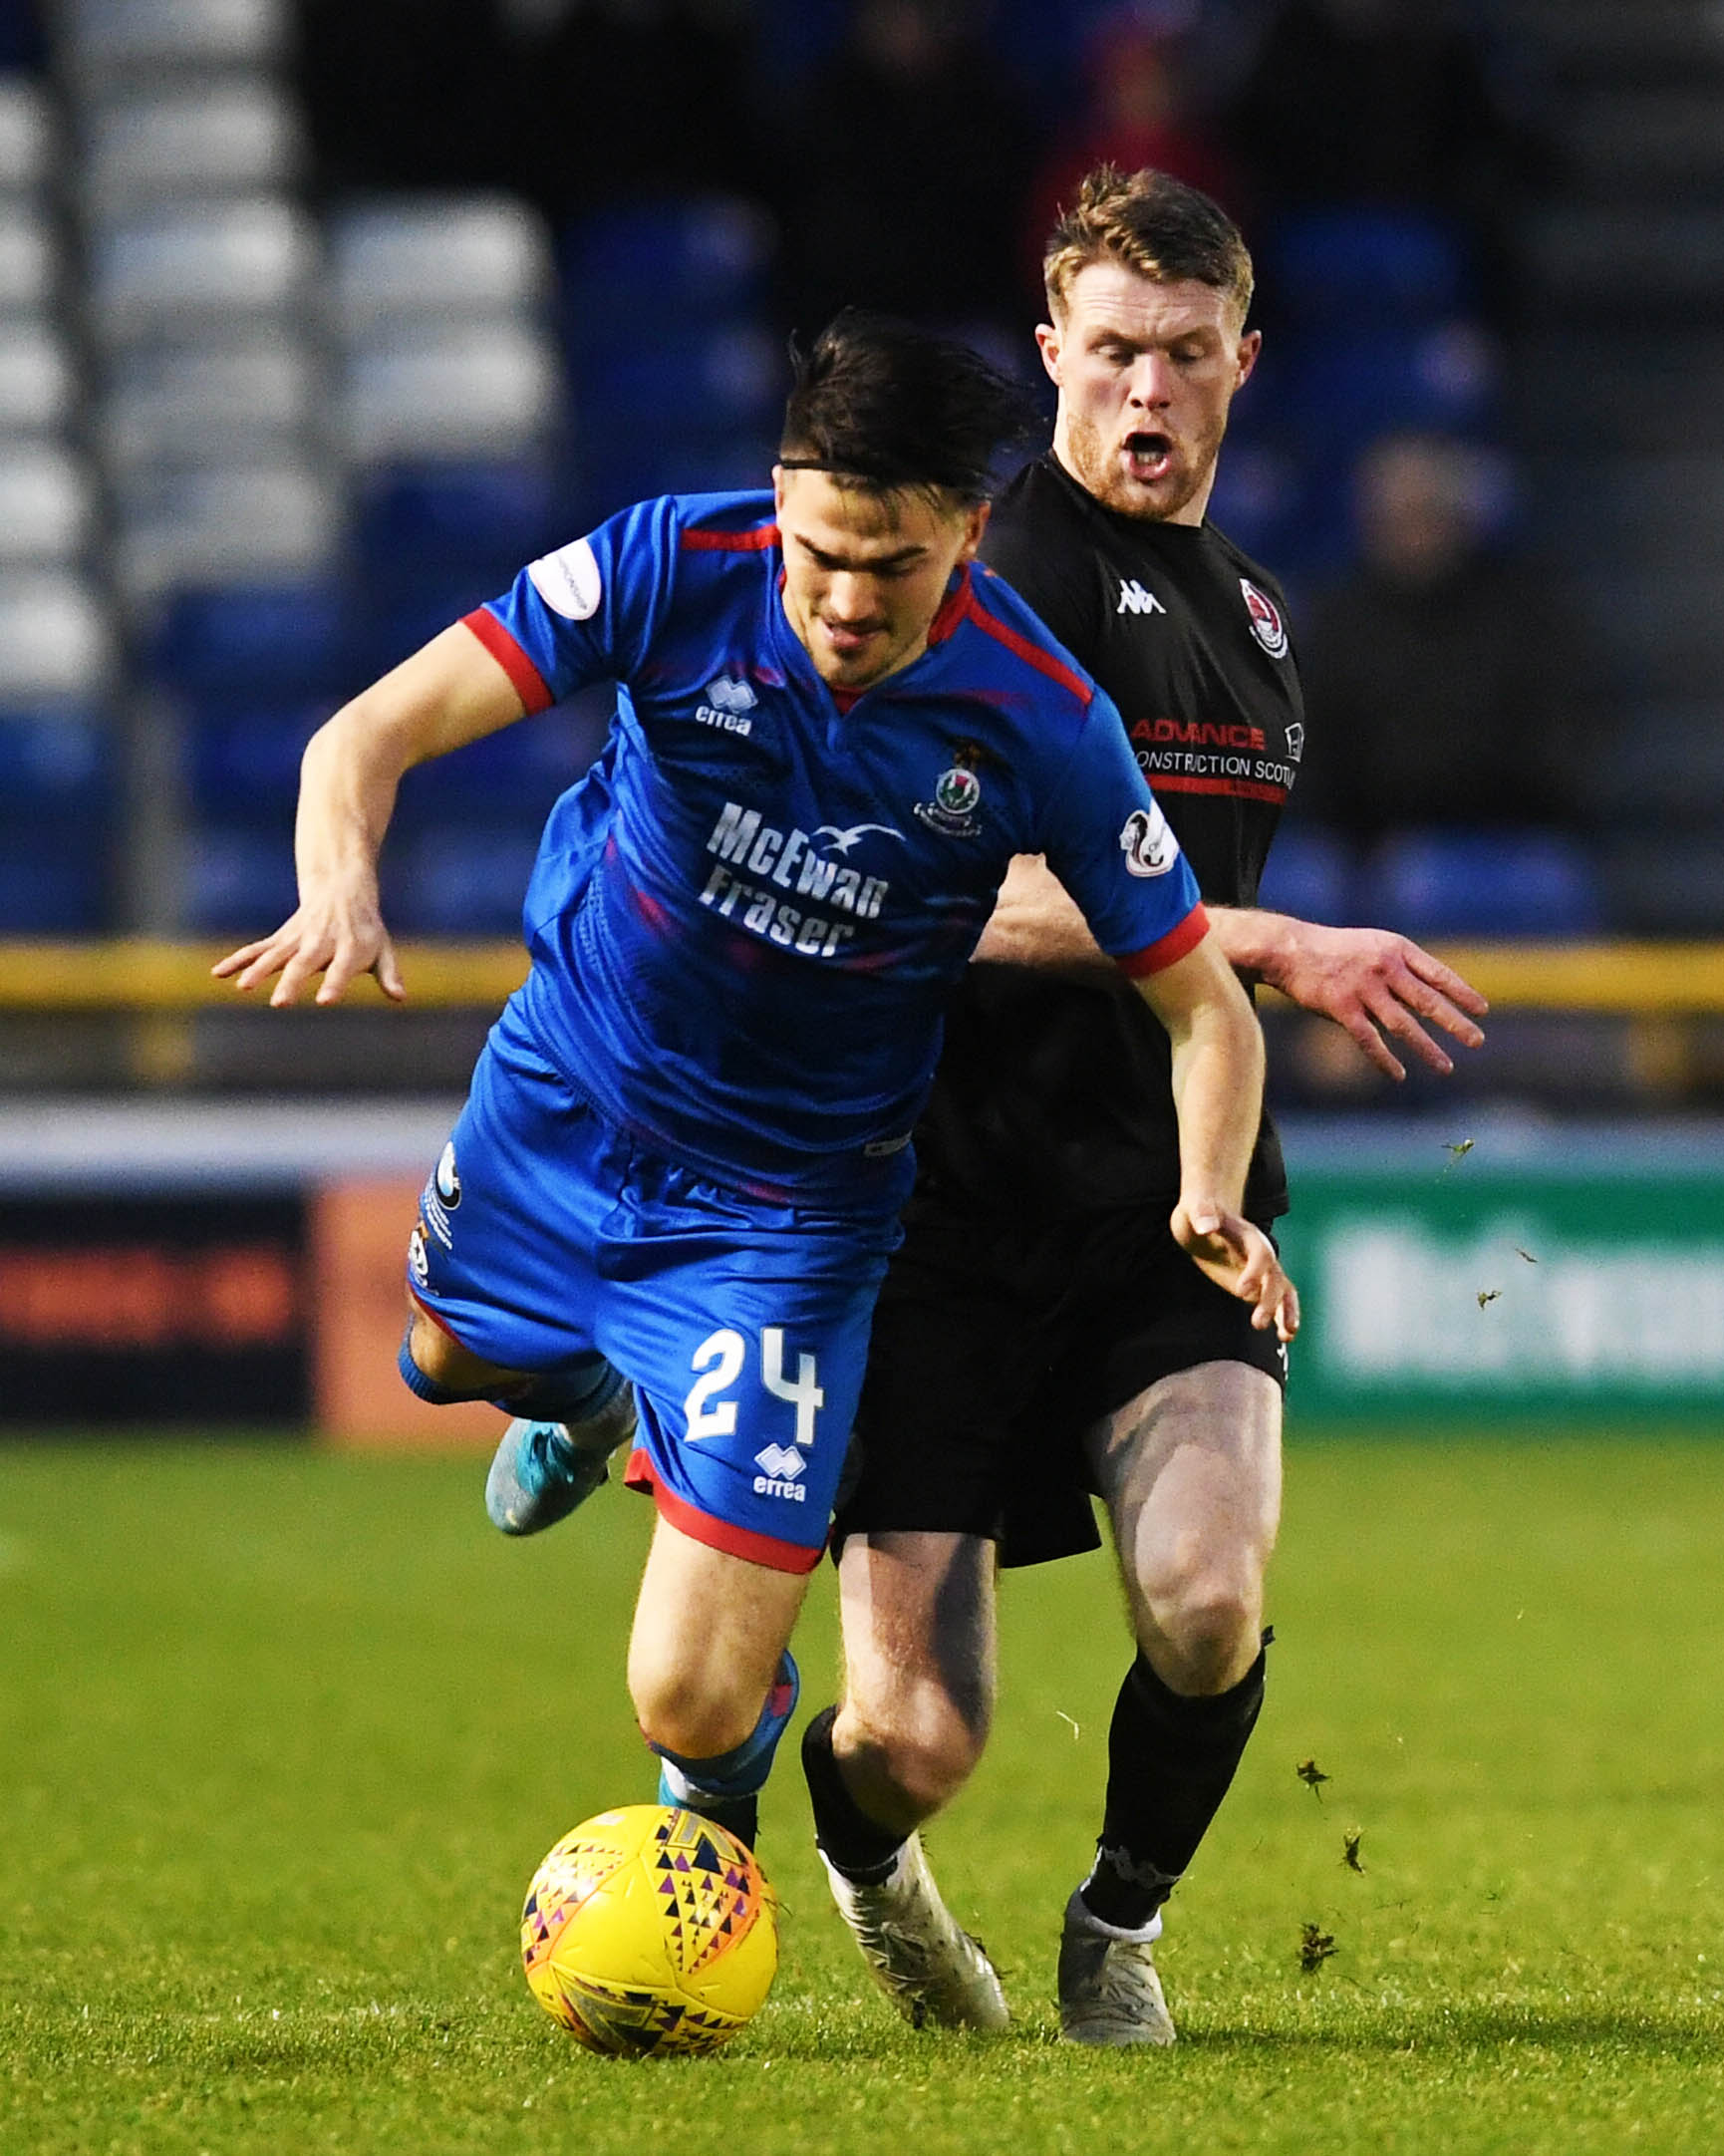 Caley Thistle's Charlie Trafford.